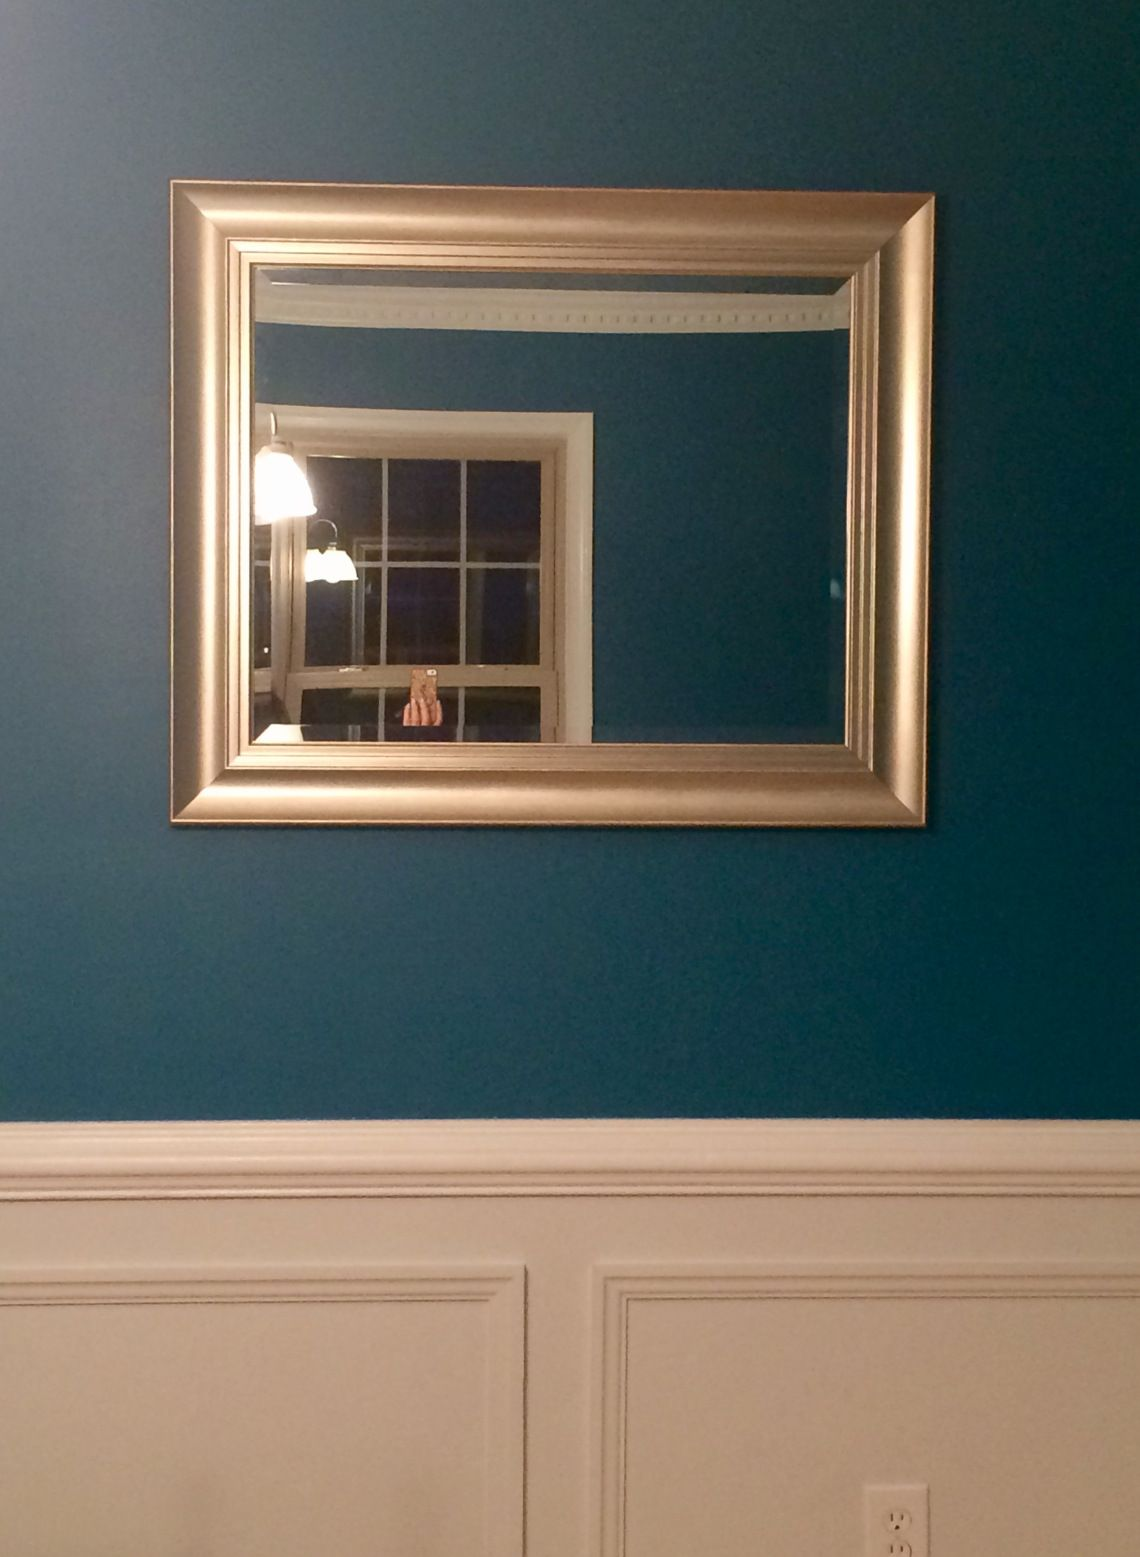 How To Hang A Mirror Or Picture With Two Hooks And Make It Completely Level Without Putting A Million Holes In The Wall Dining Room Renovation Home Mirror